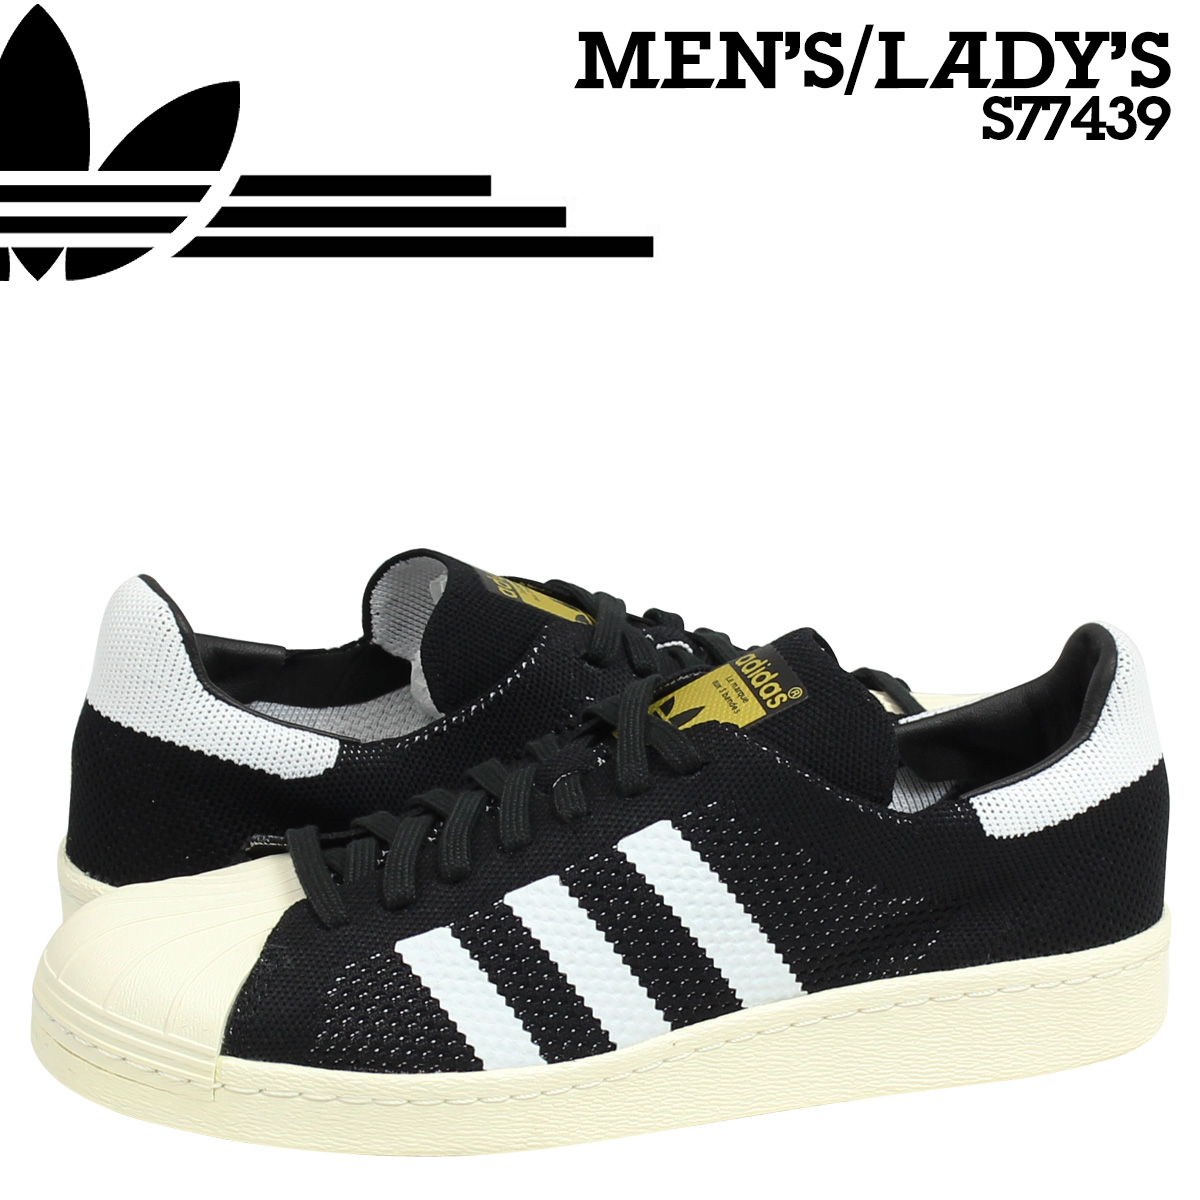 2fb0b3267 Whats up Sports  adidas Originals adidas originals superstar sneakers  SUPERSTAR 80S CONSORTIUM PRIME KNIT S77439 men s women s shoes black